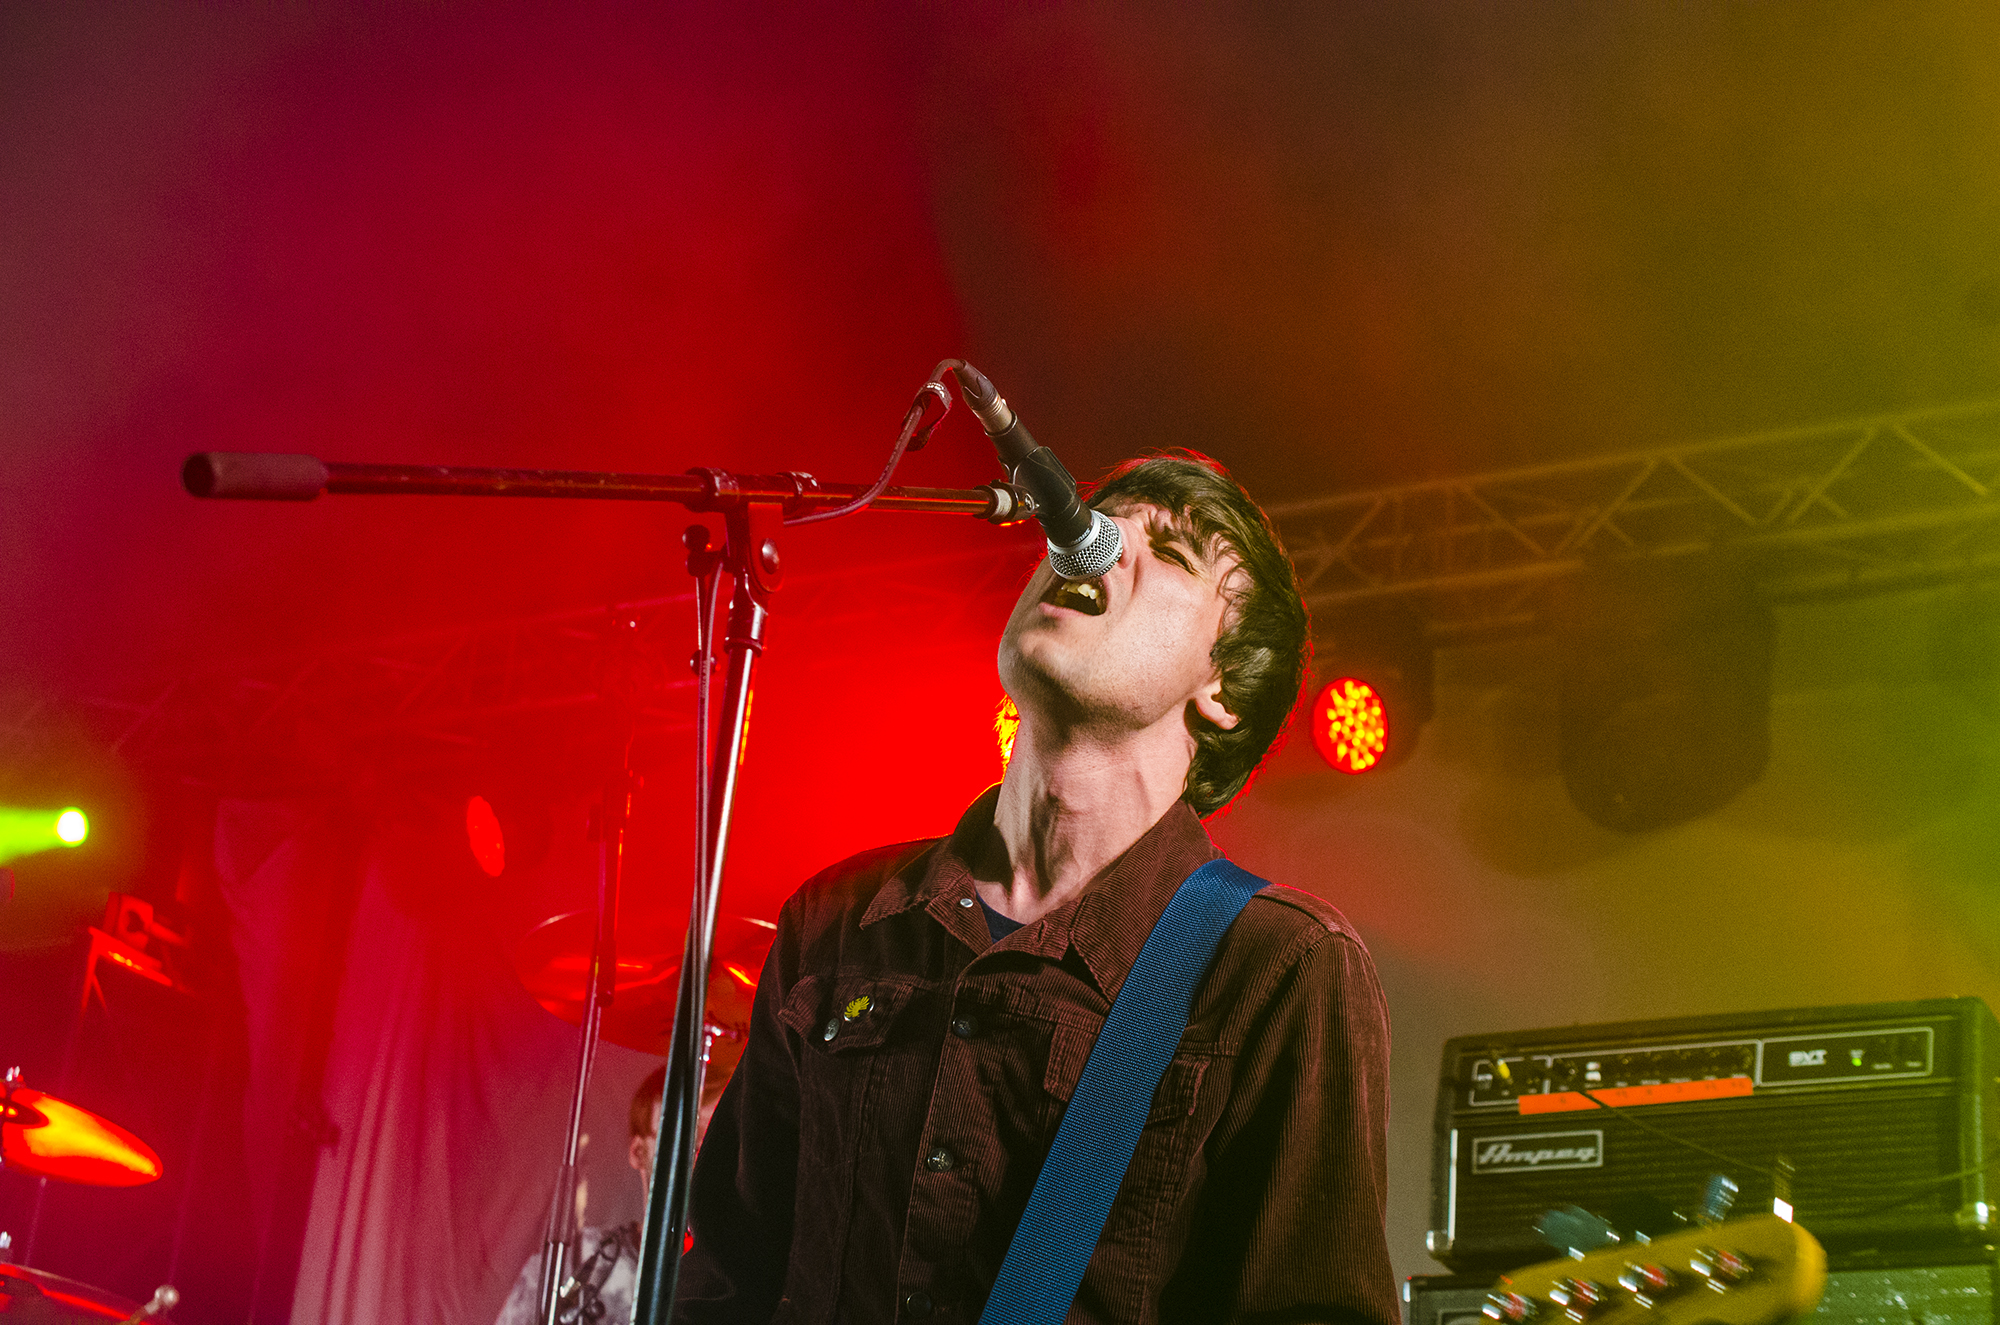 Liverpool Sound City 2017: The Cribs